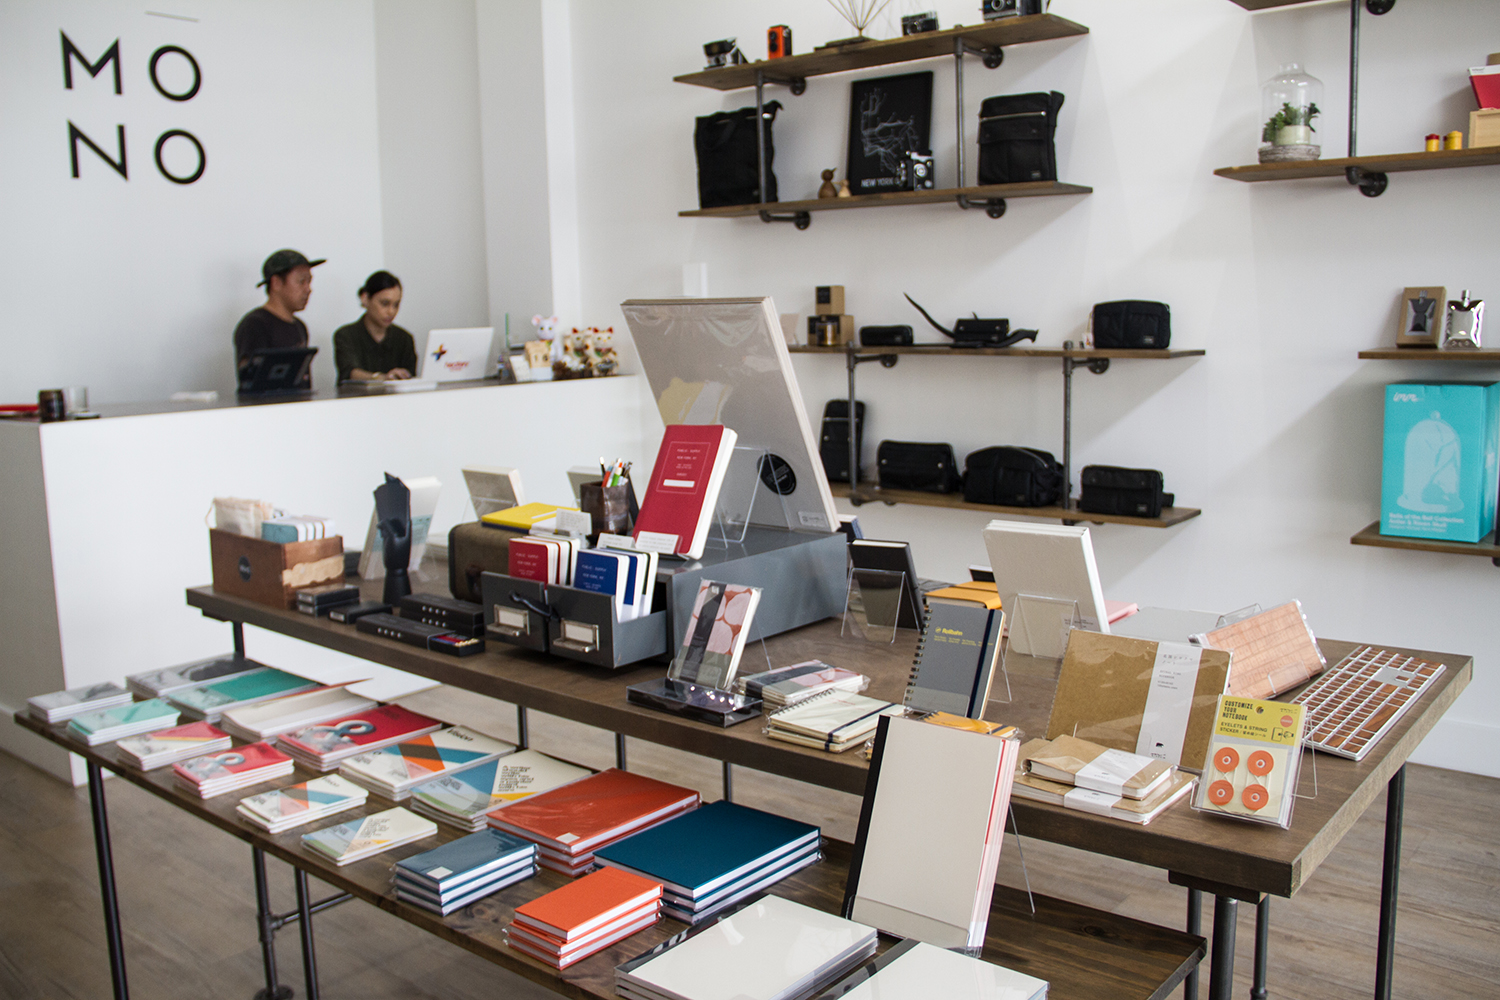 A thoughtfully curated selection of design-driven goods at Mōno. Owners Dean & Cassy Song are in the background manningthe counter.